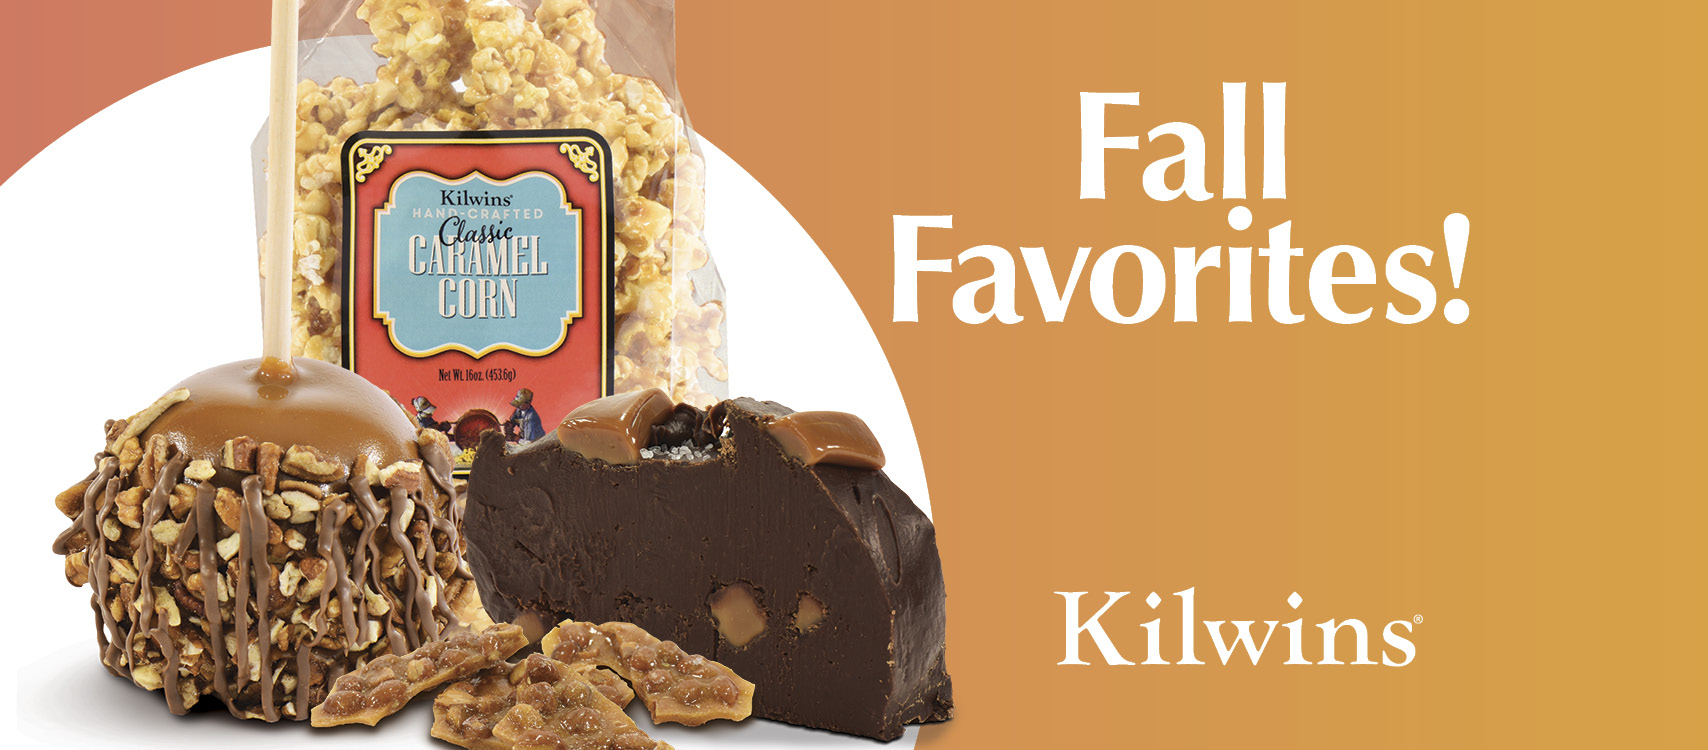 The Kilwins Fall Promotion Graphic